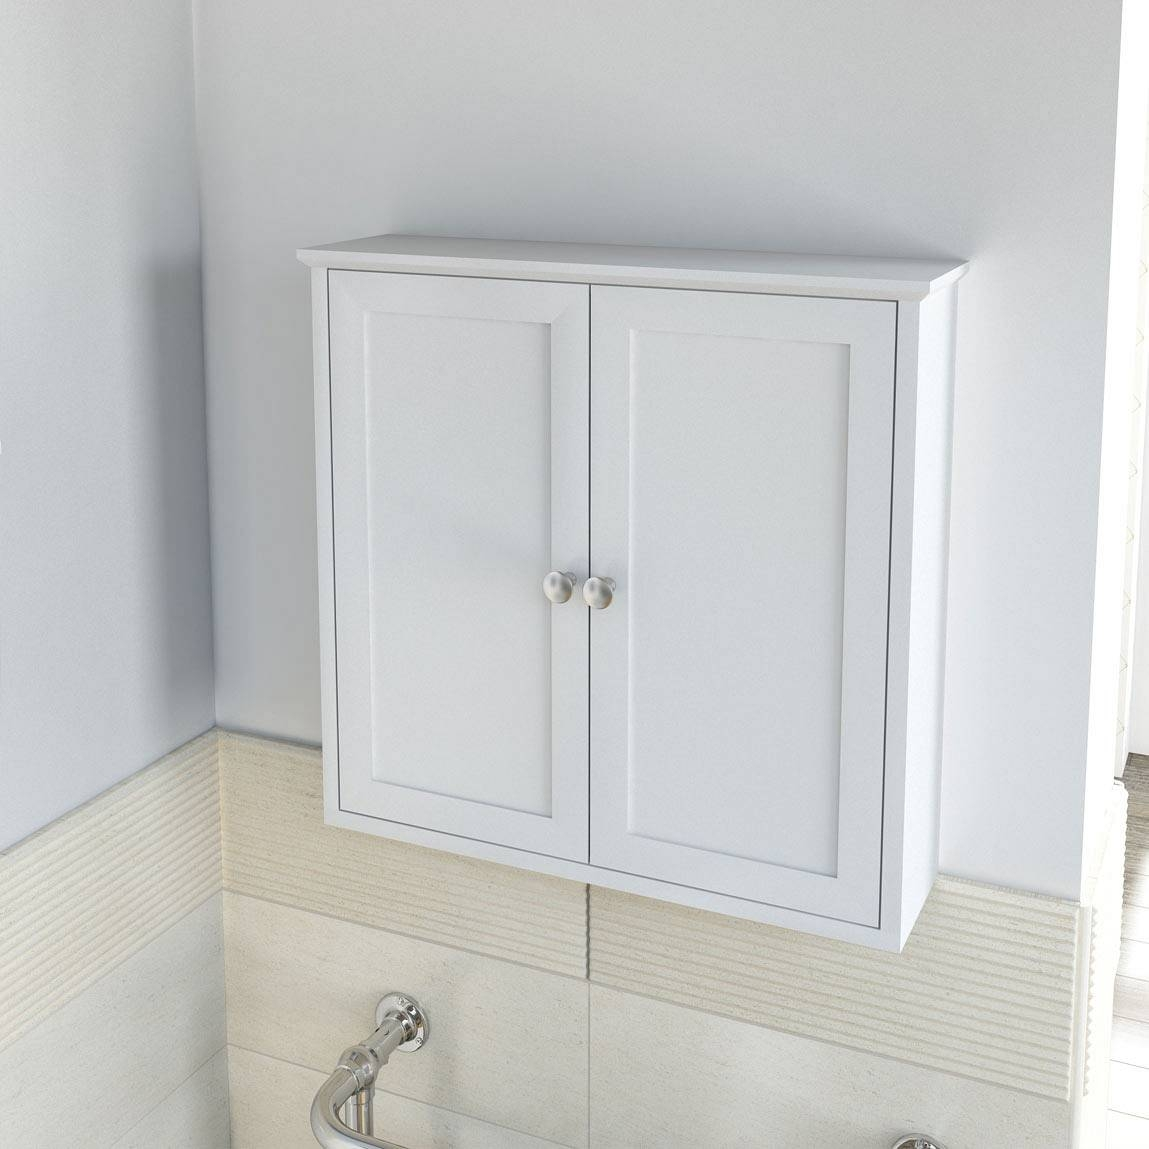 Bathroom Wall Hanging Cabinets